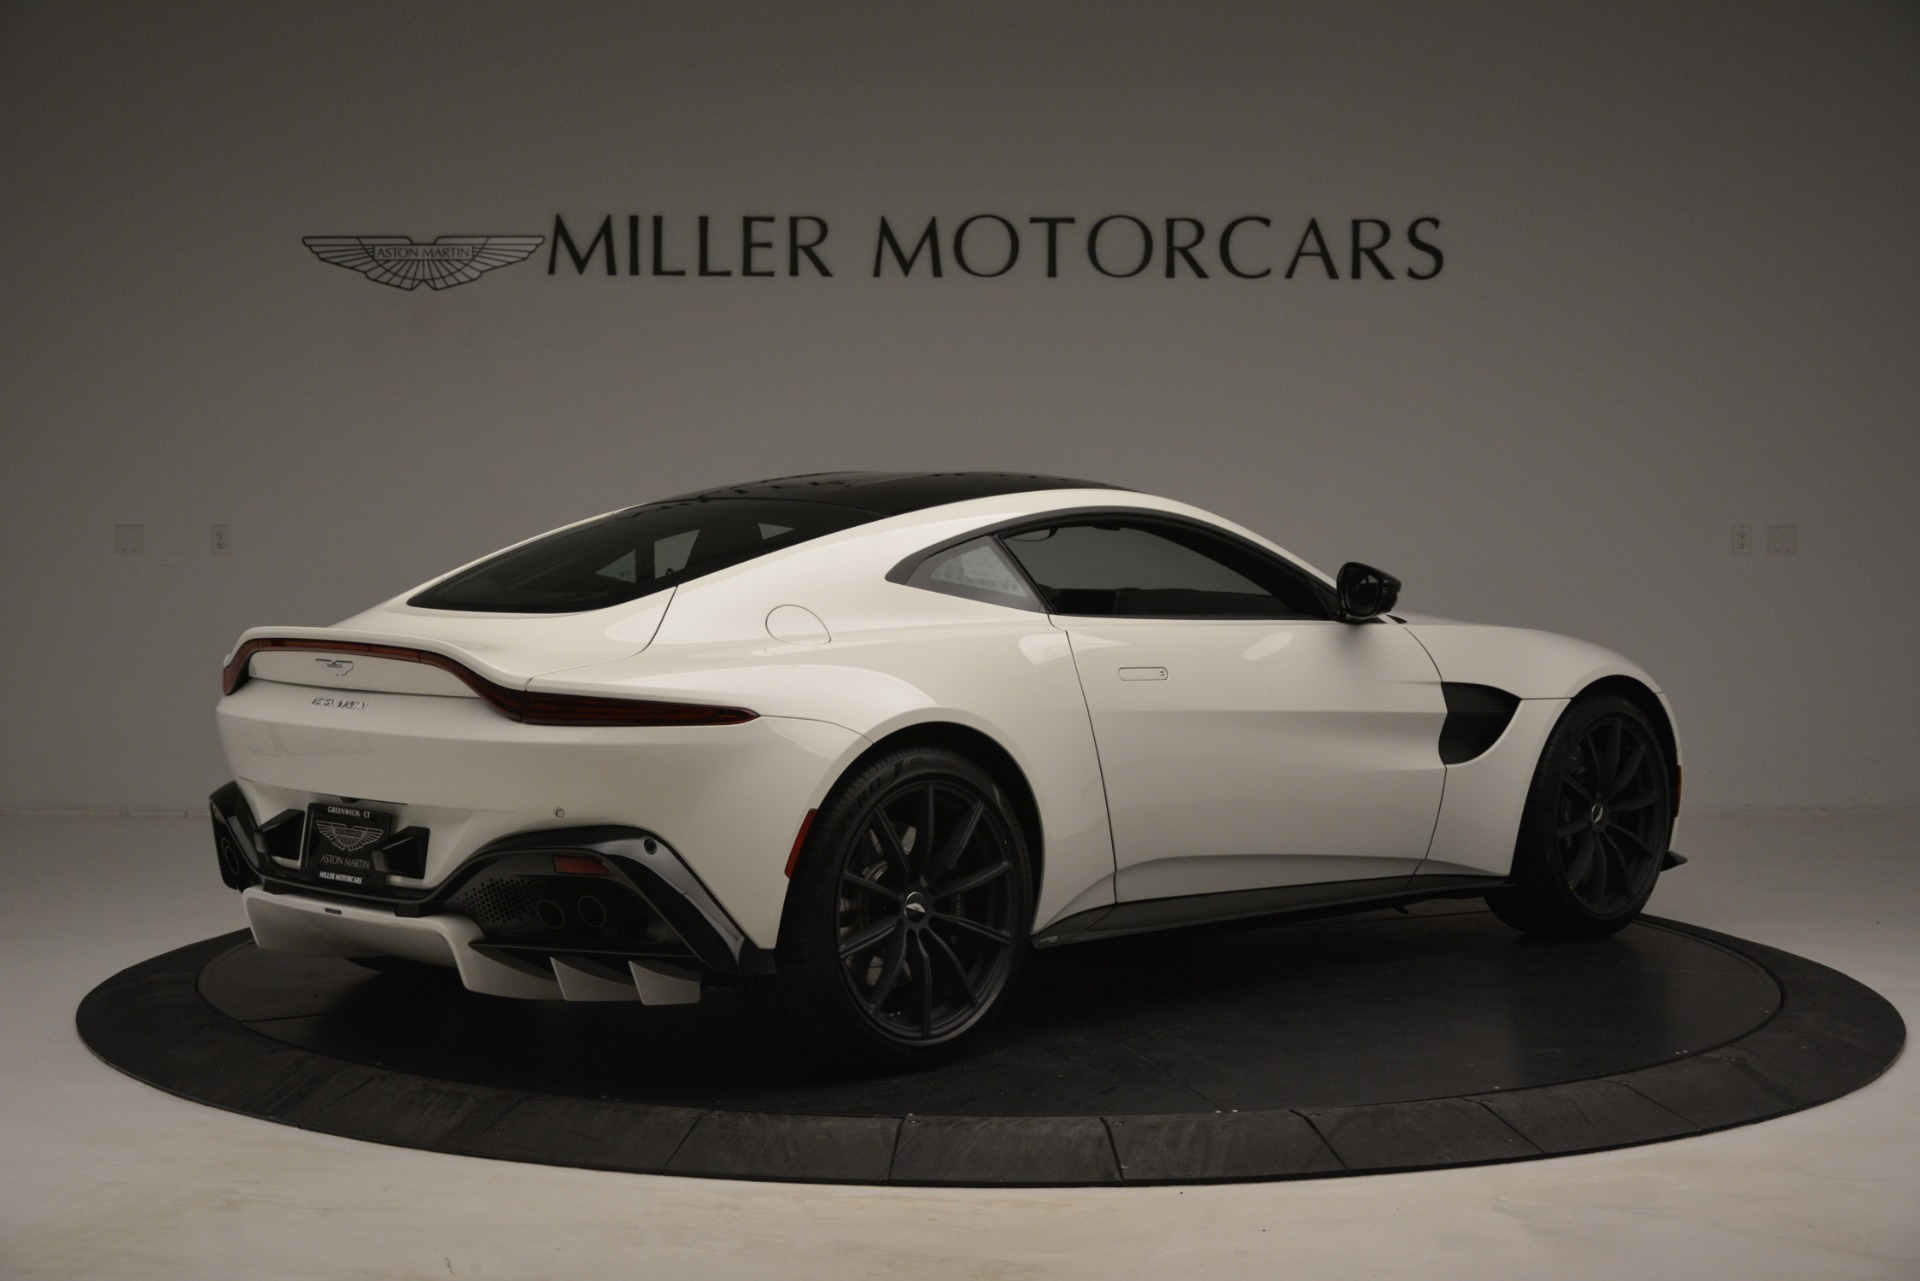 New 2019 Aston Martin Vantage V8 For Sale In Westport, CT 3053_p8